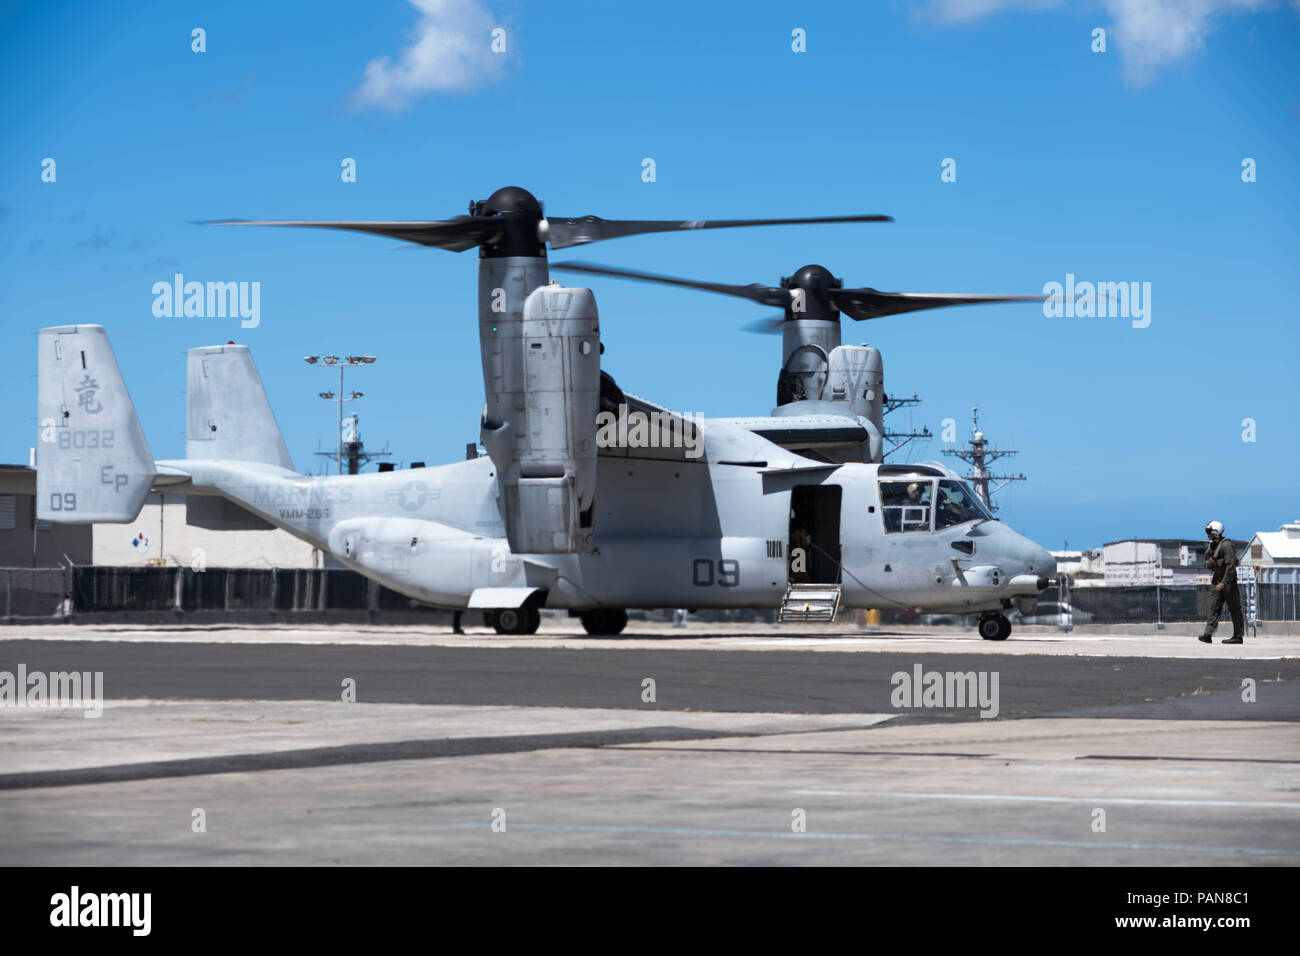 180720-N-ND356-0112 PEARL HARBOR (July 20, 2018) A MV-22 Osprey with Marine Medium Tilt-rotor Squadron 265 (VMM-265) conducts a pre-launch sequence prior to take off. VMM-265 is assisting with the aircraft's transition from Okinawa, Japan to Marine Corps Base Hawaii. (U.S. Navy photo by Mass Communication Specialist 2nd Class Jessica O. Blackwell) - Stock Image